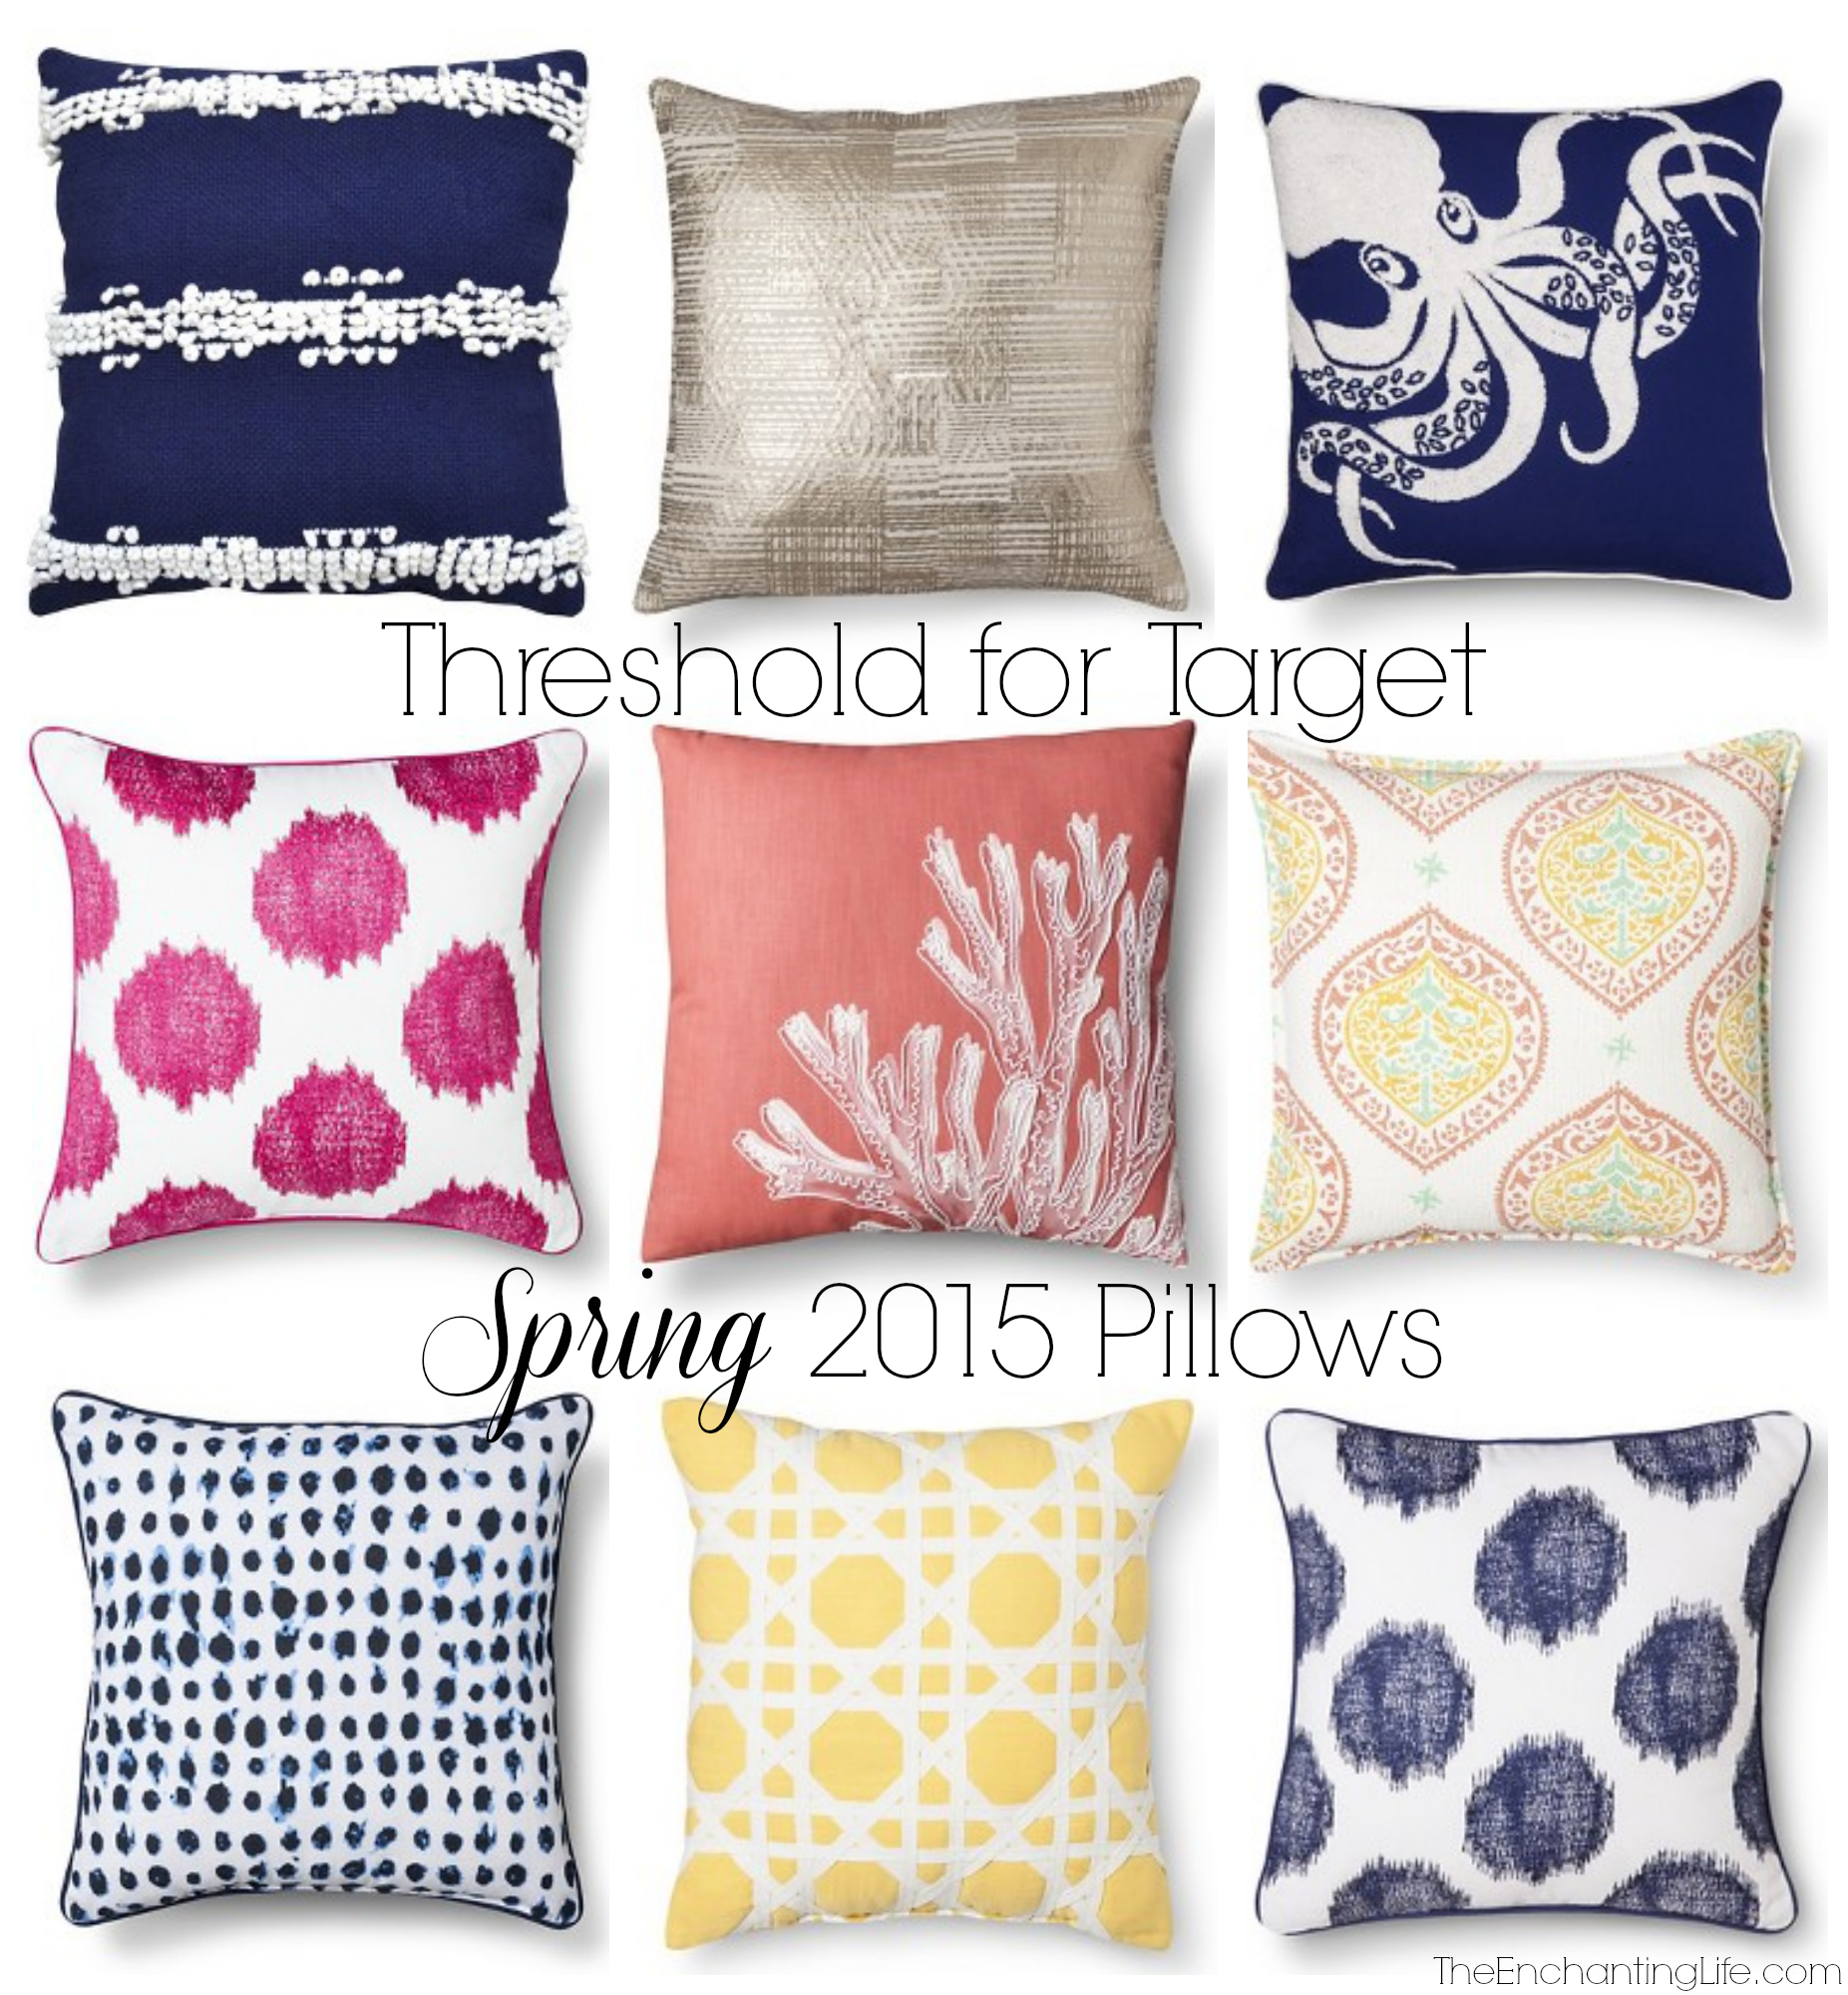 threshold spring 2015 pillows - 16 Latest Tips You Can Learn When Attending Spring Throw Pillows